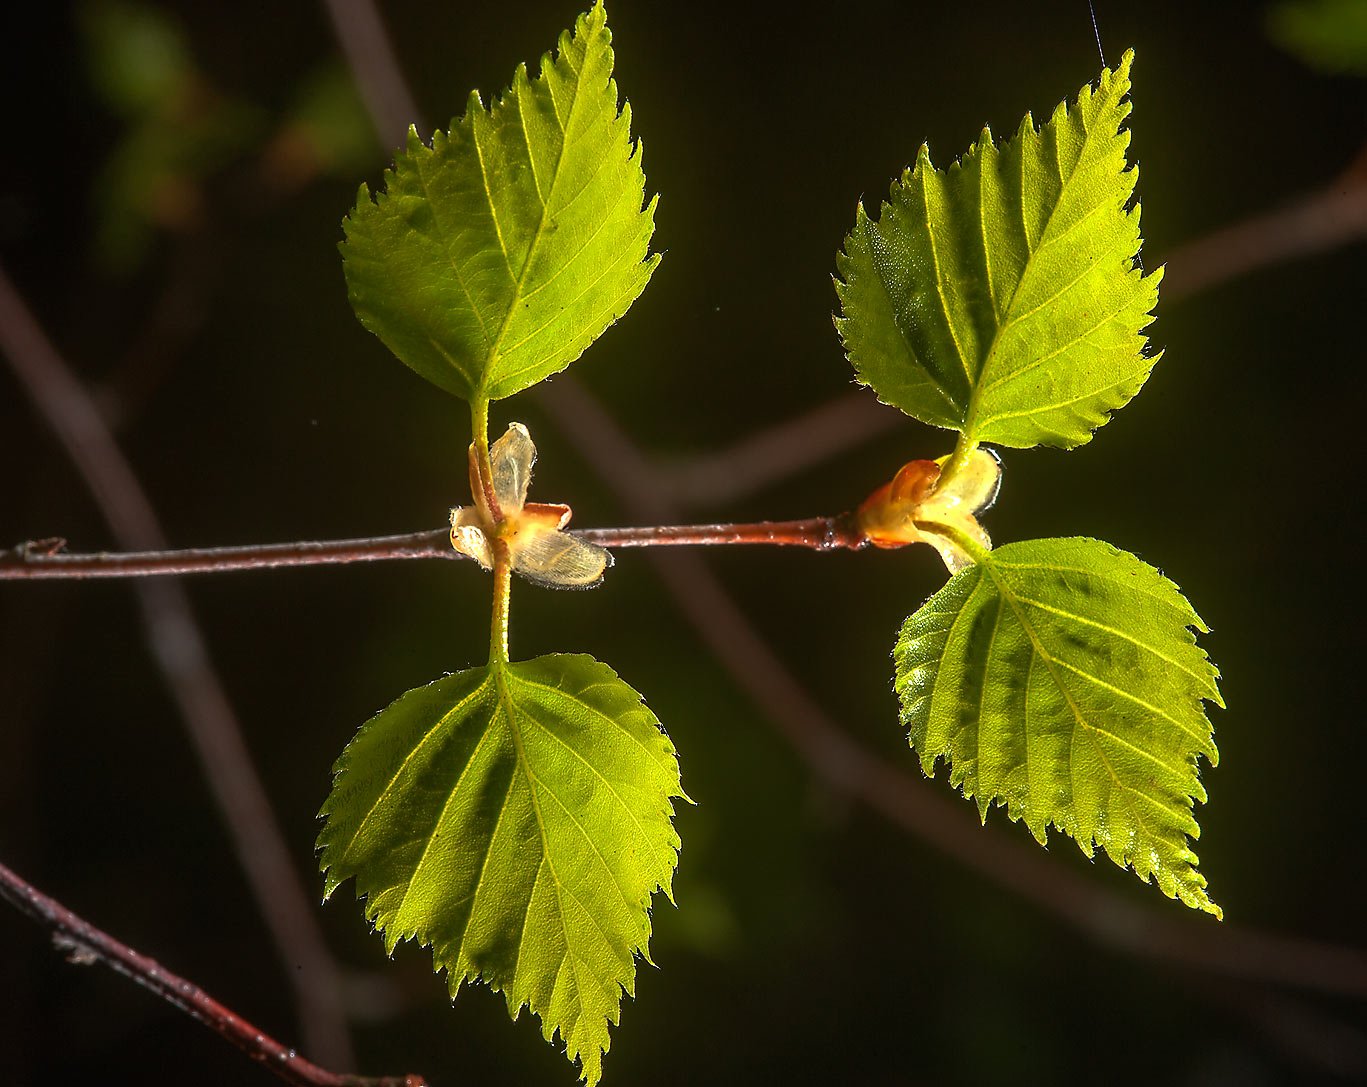 Young leaves of birch near Kavgolovskoe Lake in Toksovo, a suburb of St.Petersburg, Russia